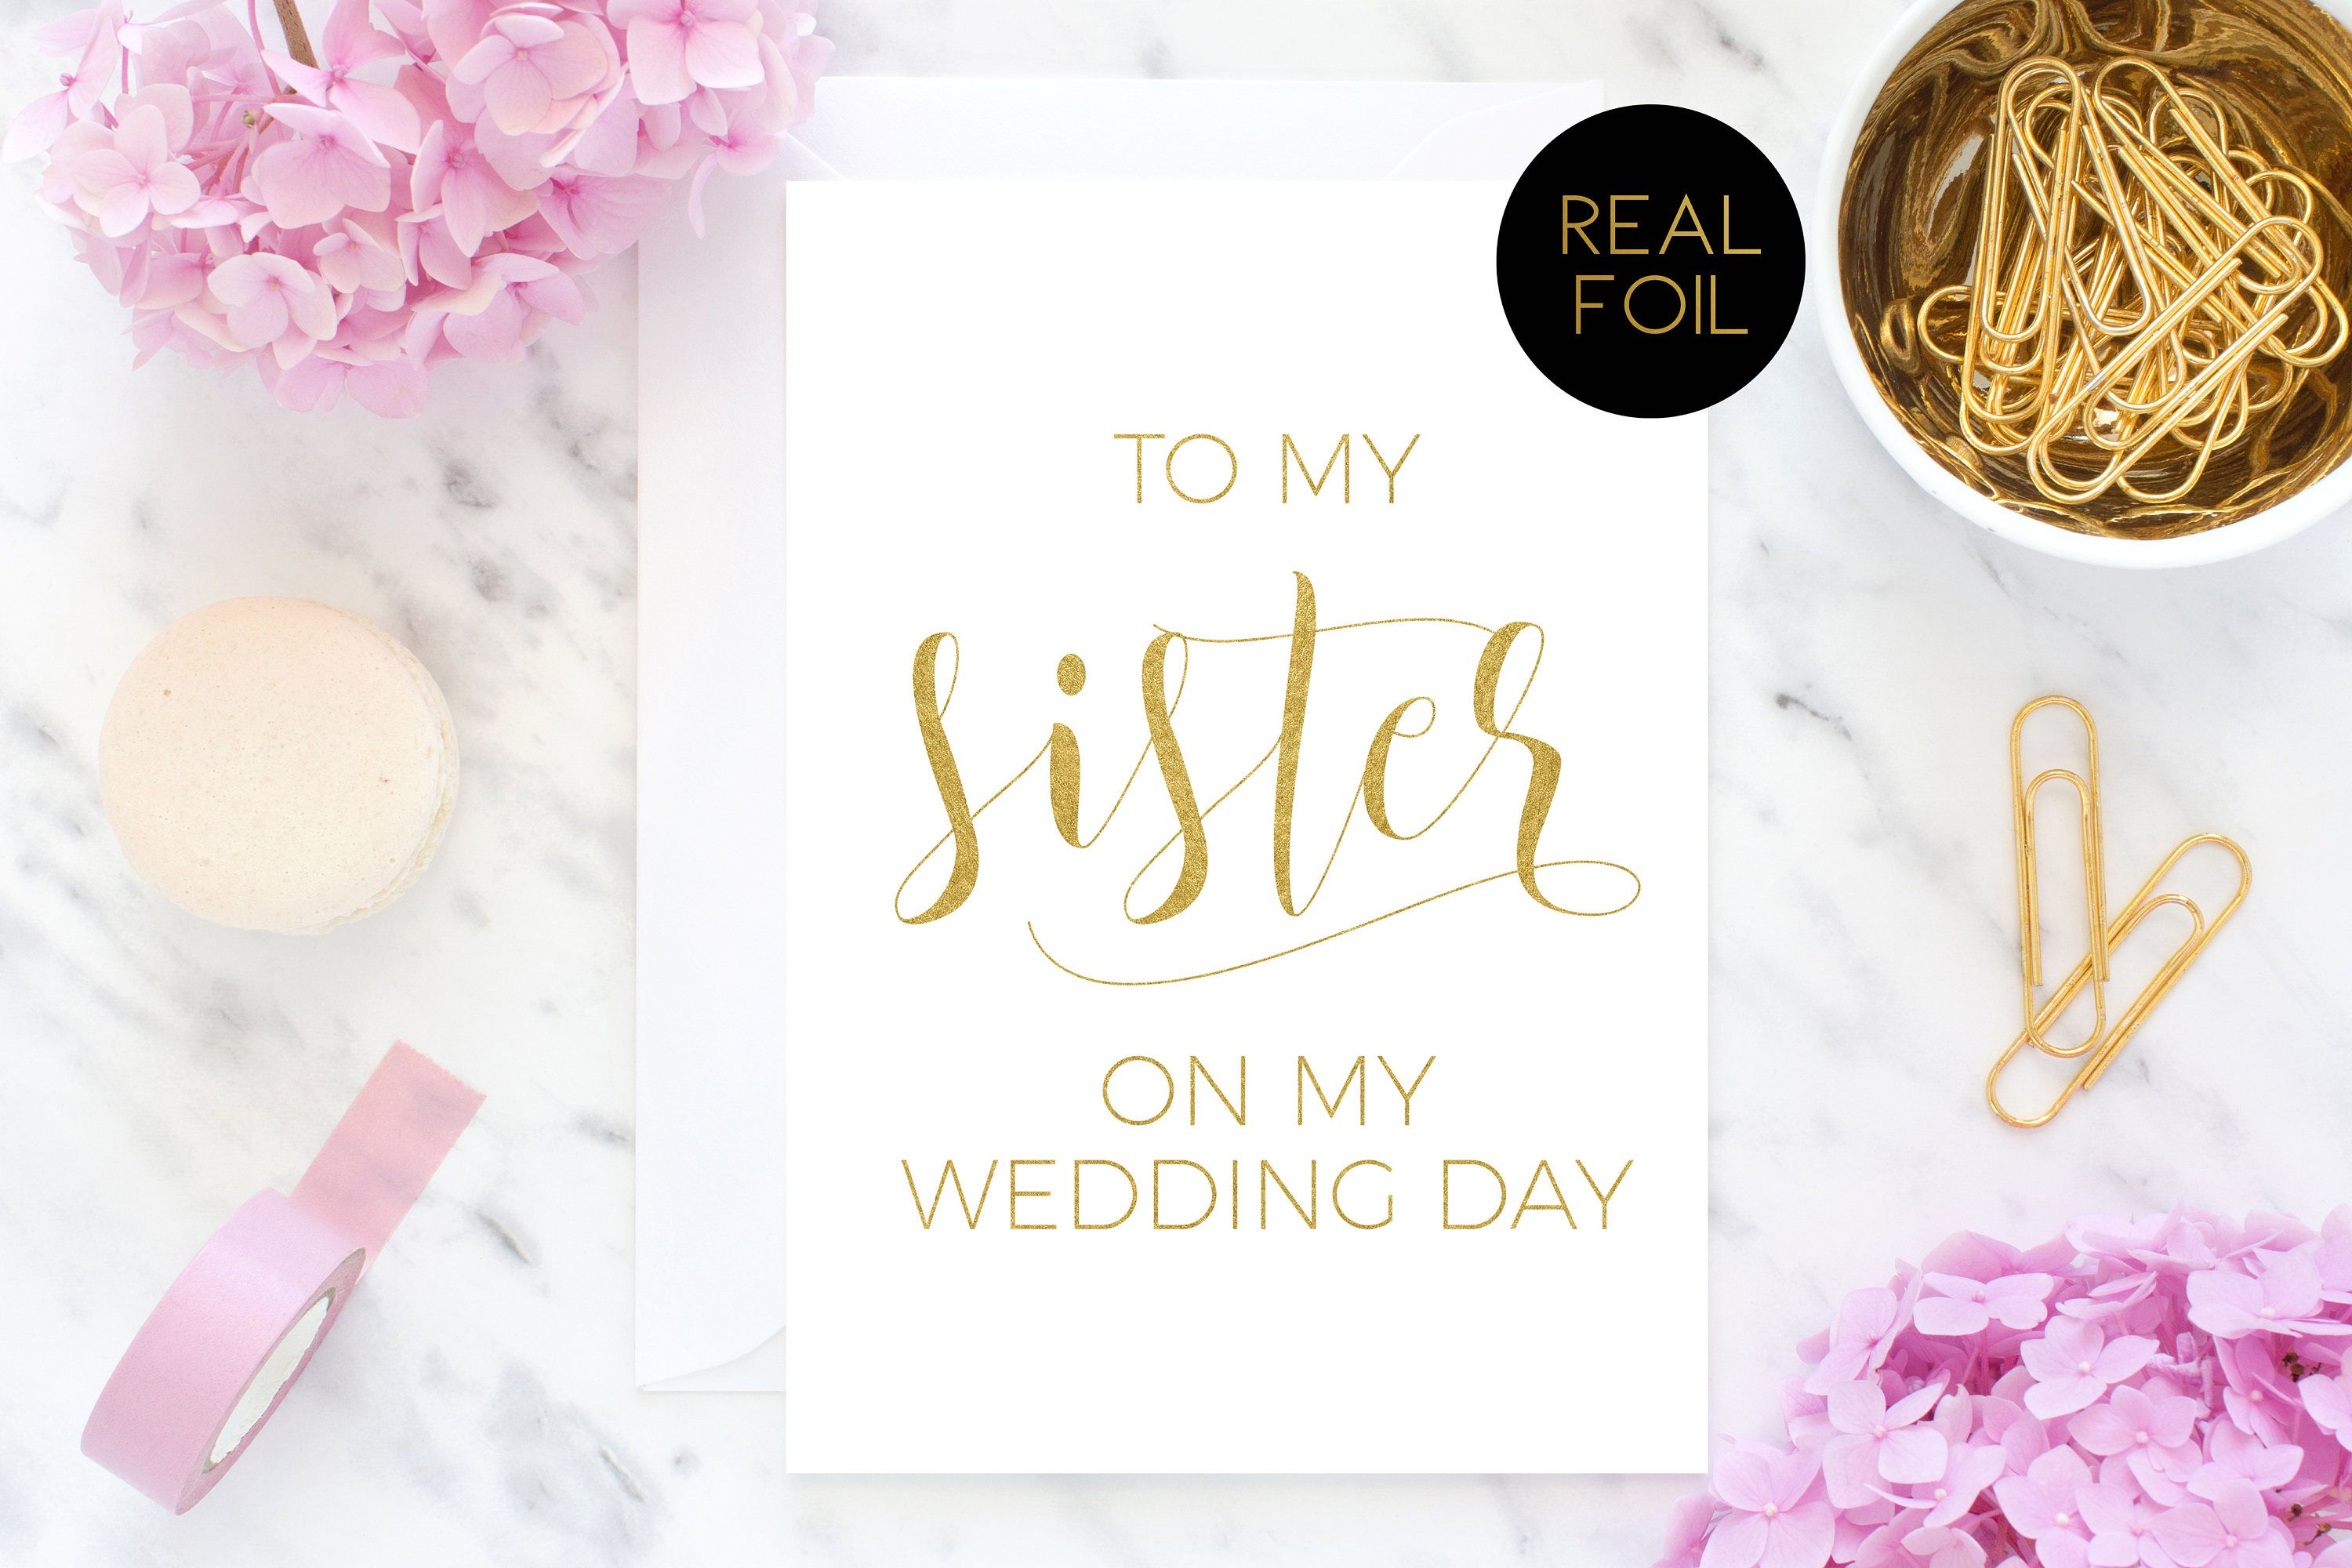 sister wedding invitation card wordings%0A hindu sister marriage invitation wordings for friends Brother Sisterinlaw Wedding  Card Amazoncouk Office Products a b c e ba